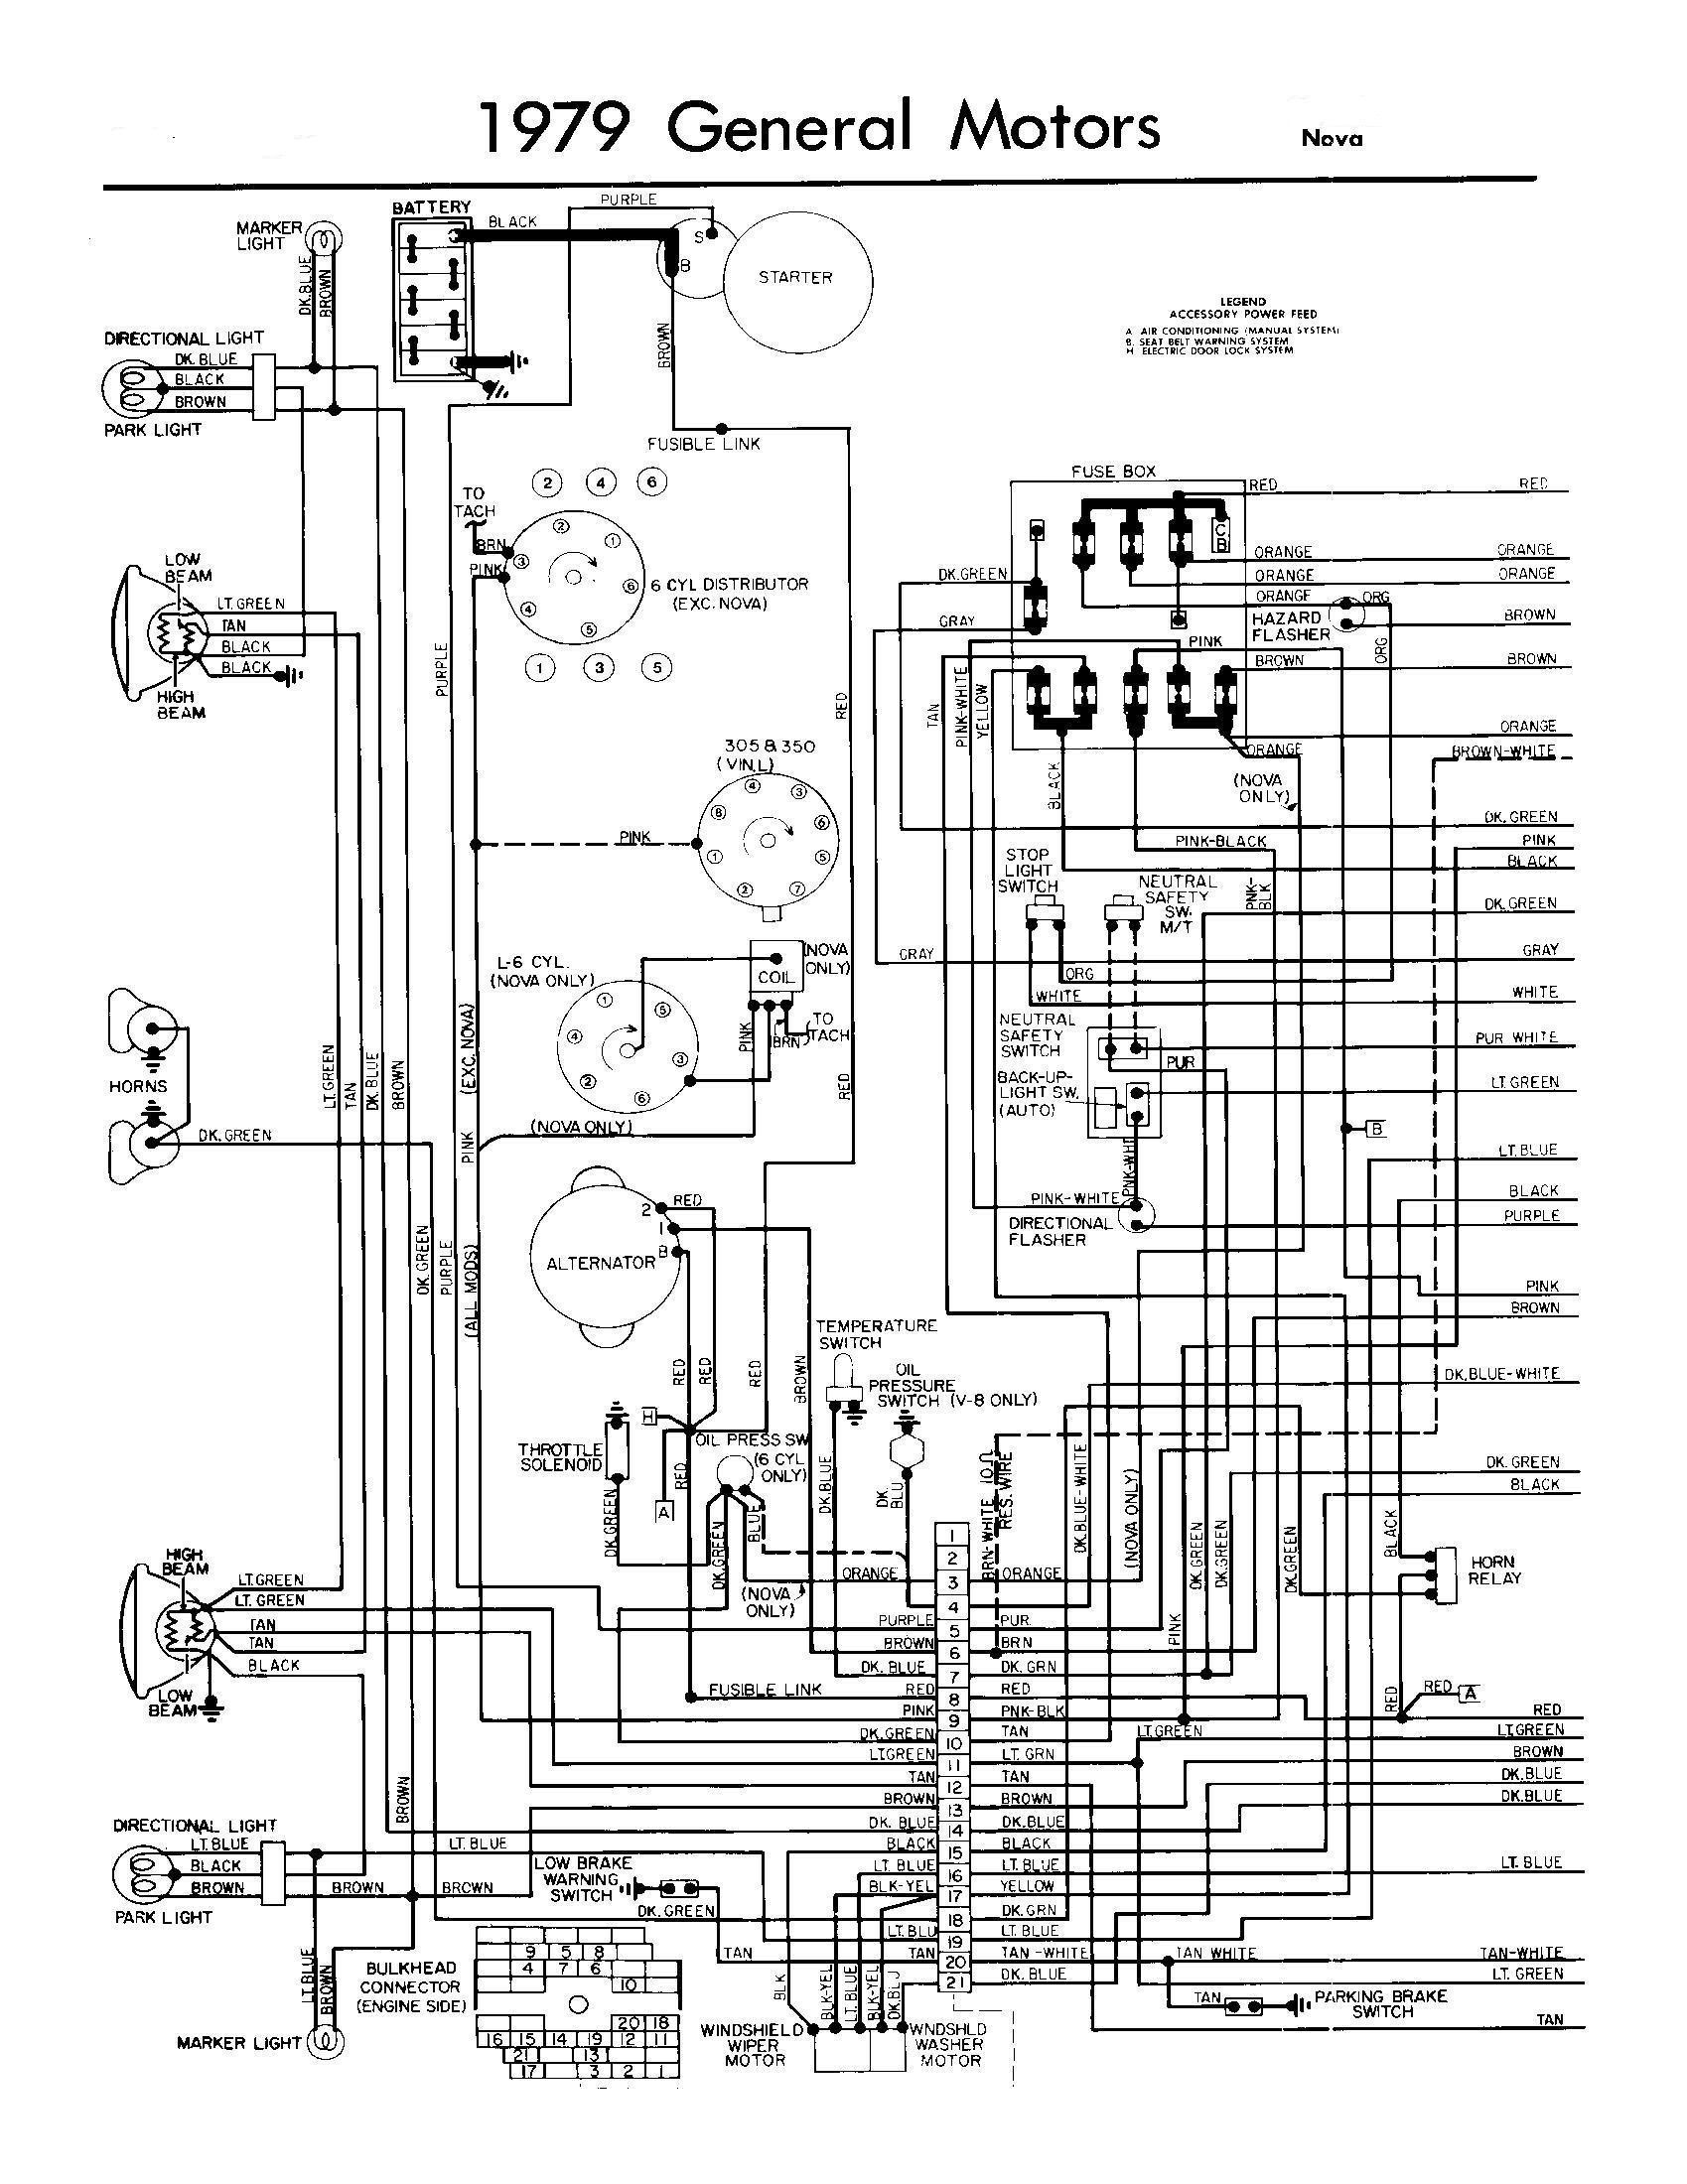 Chevy Truck Wiring Diagram All Generation Wiring Schematics Chevy Nova forum